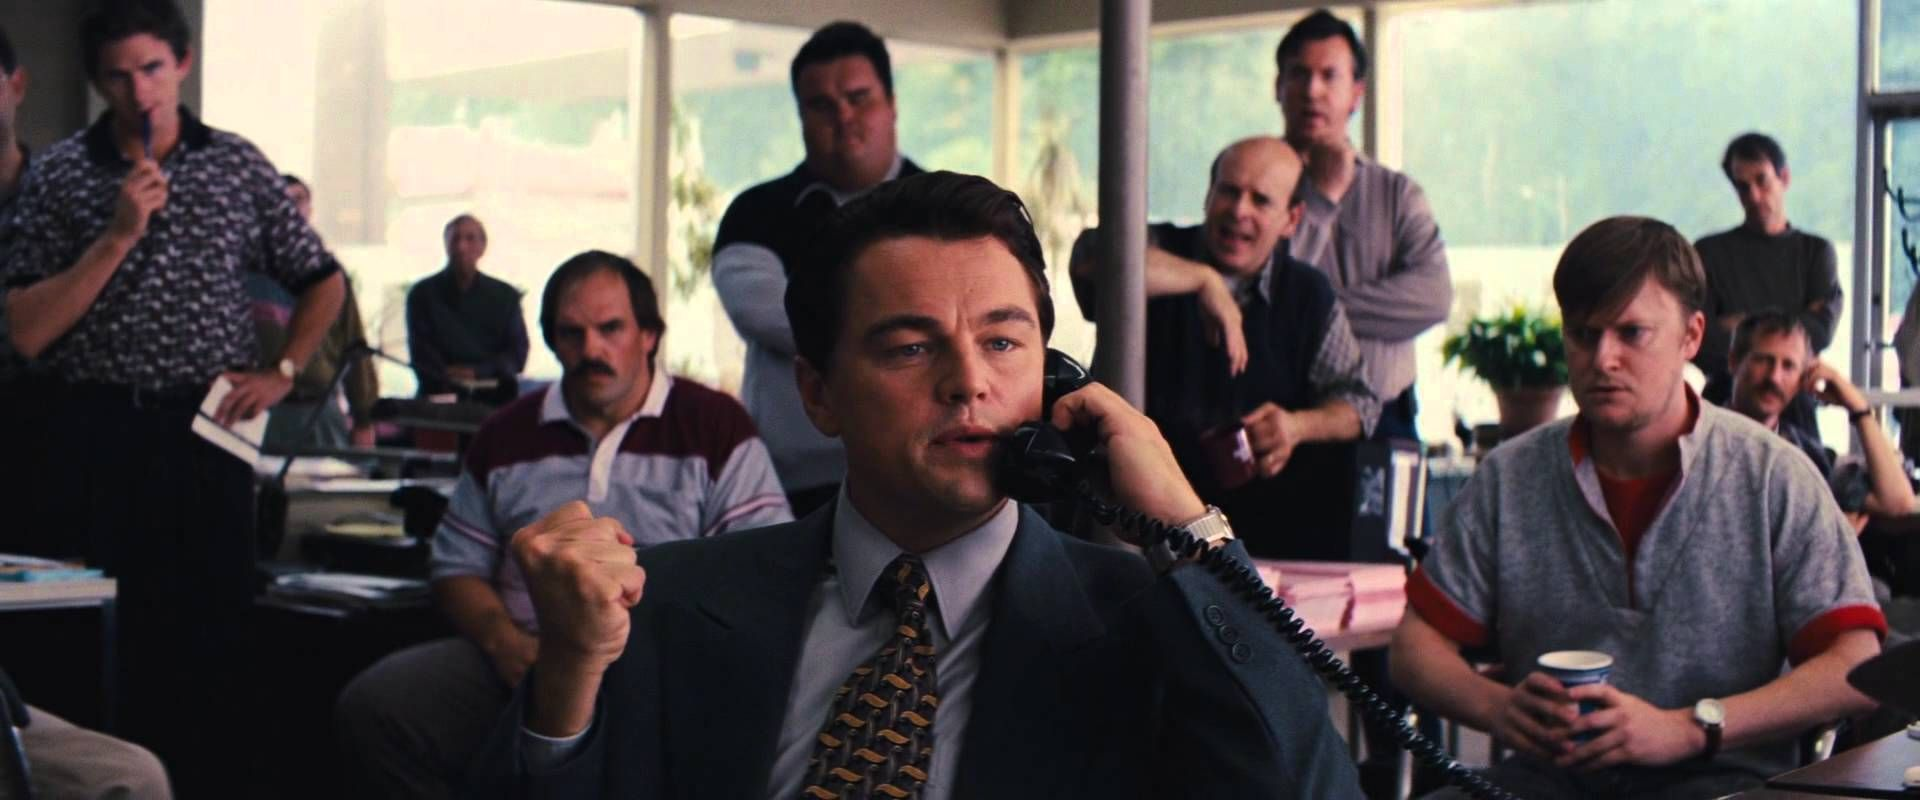 Jordans first phone call at the investors centre the